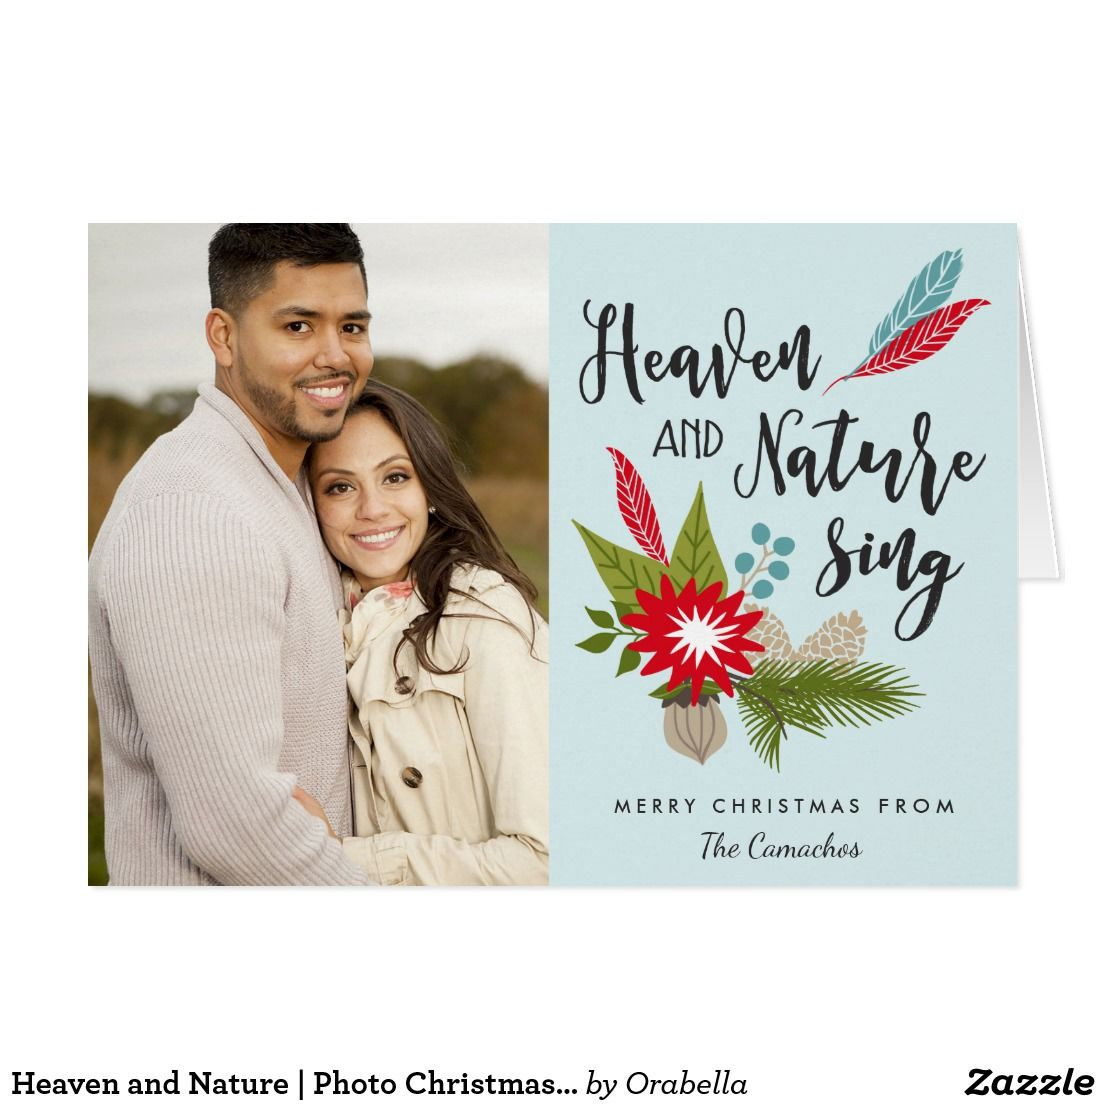 Heaven and nature photo christmas greeting card add a personal heaven and nature photo christmas greeting card add a personal touch to your holiday greetings m4hsunfo